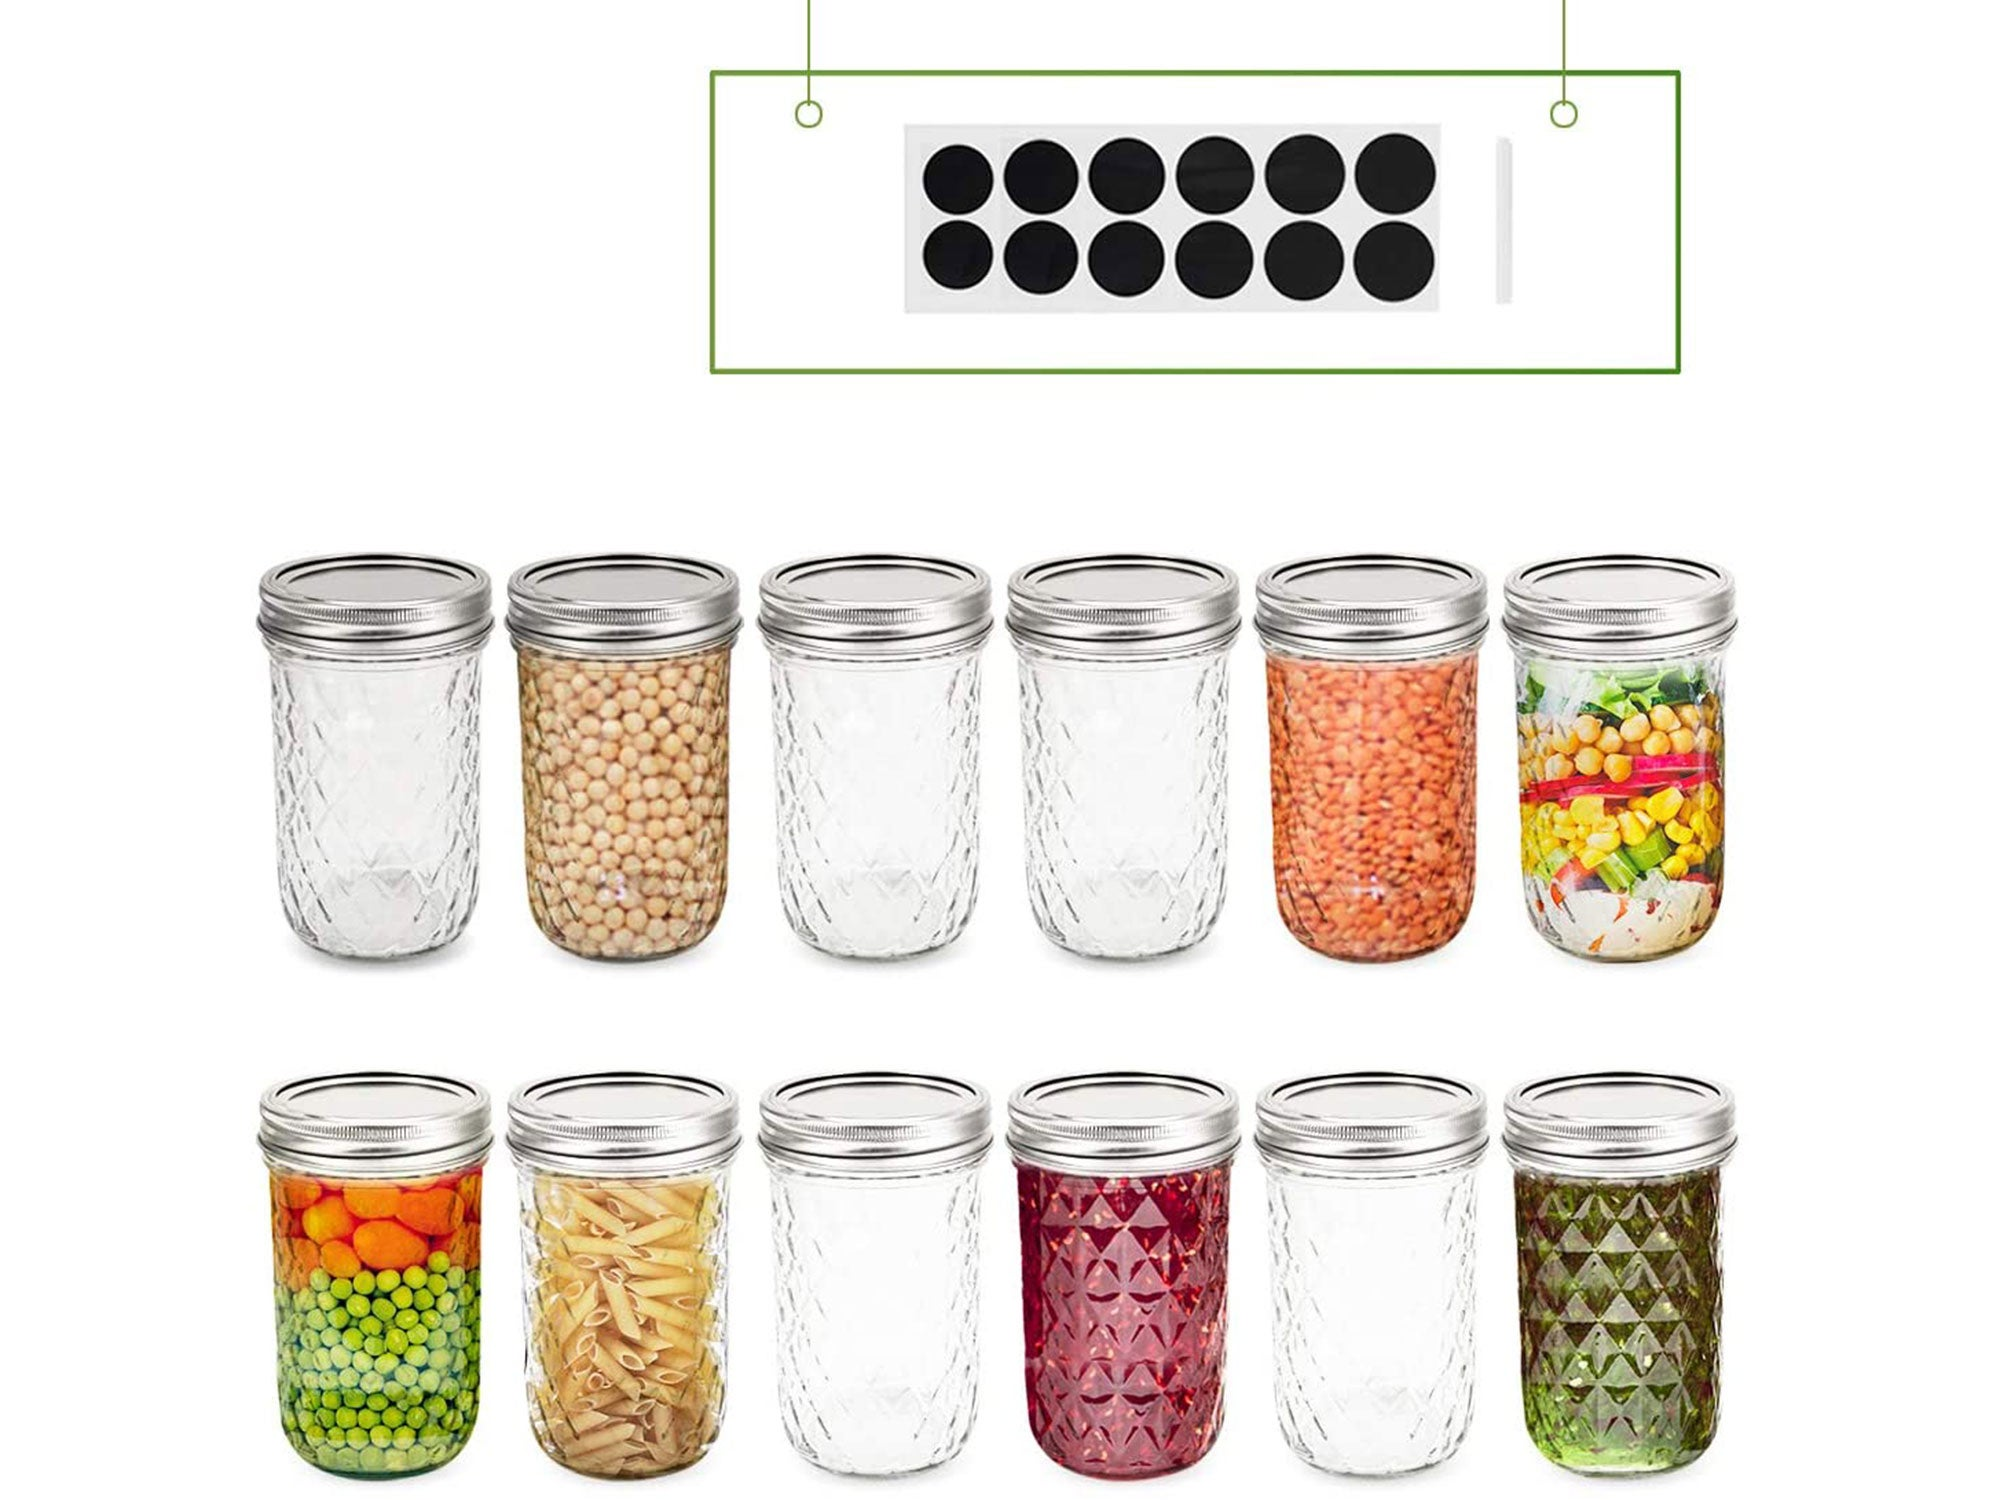 FRUITEAM 8 oz Mason Jars with Lids and Bands-Set of 12, Quilted Crystal Jars Ideal for Jams, Jellies, Conserves, Preserves, Fruit Syrups, Chutneys, and Pizza Sauce